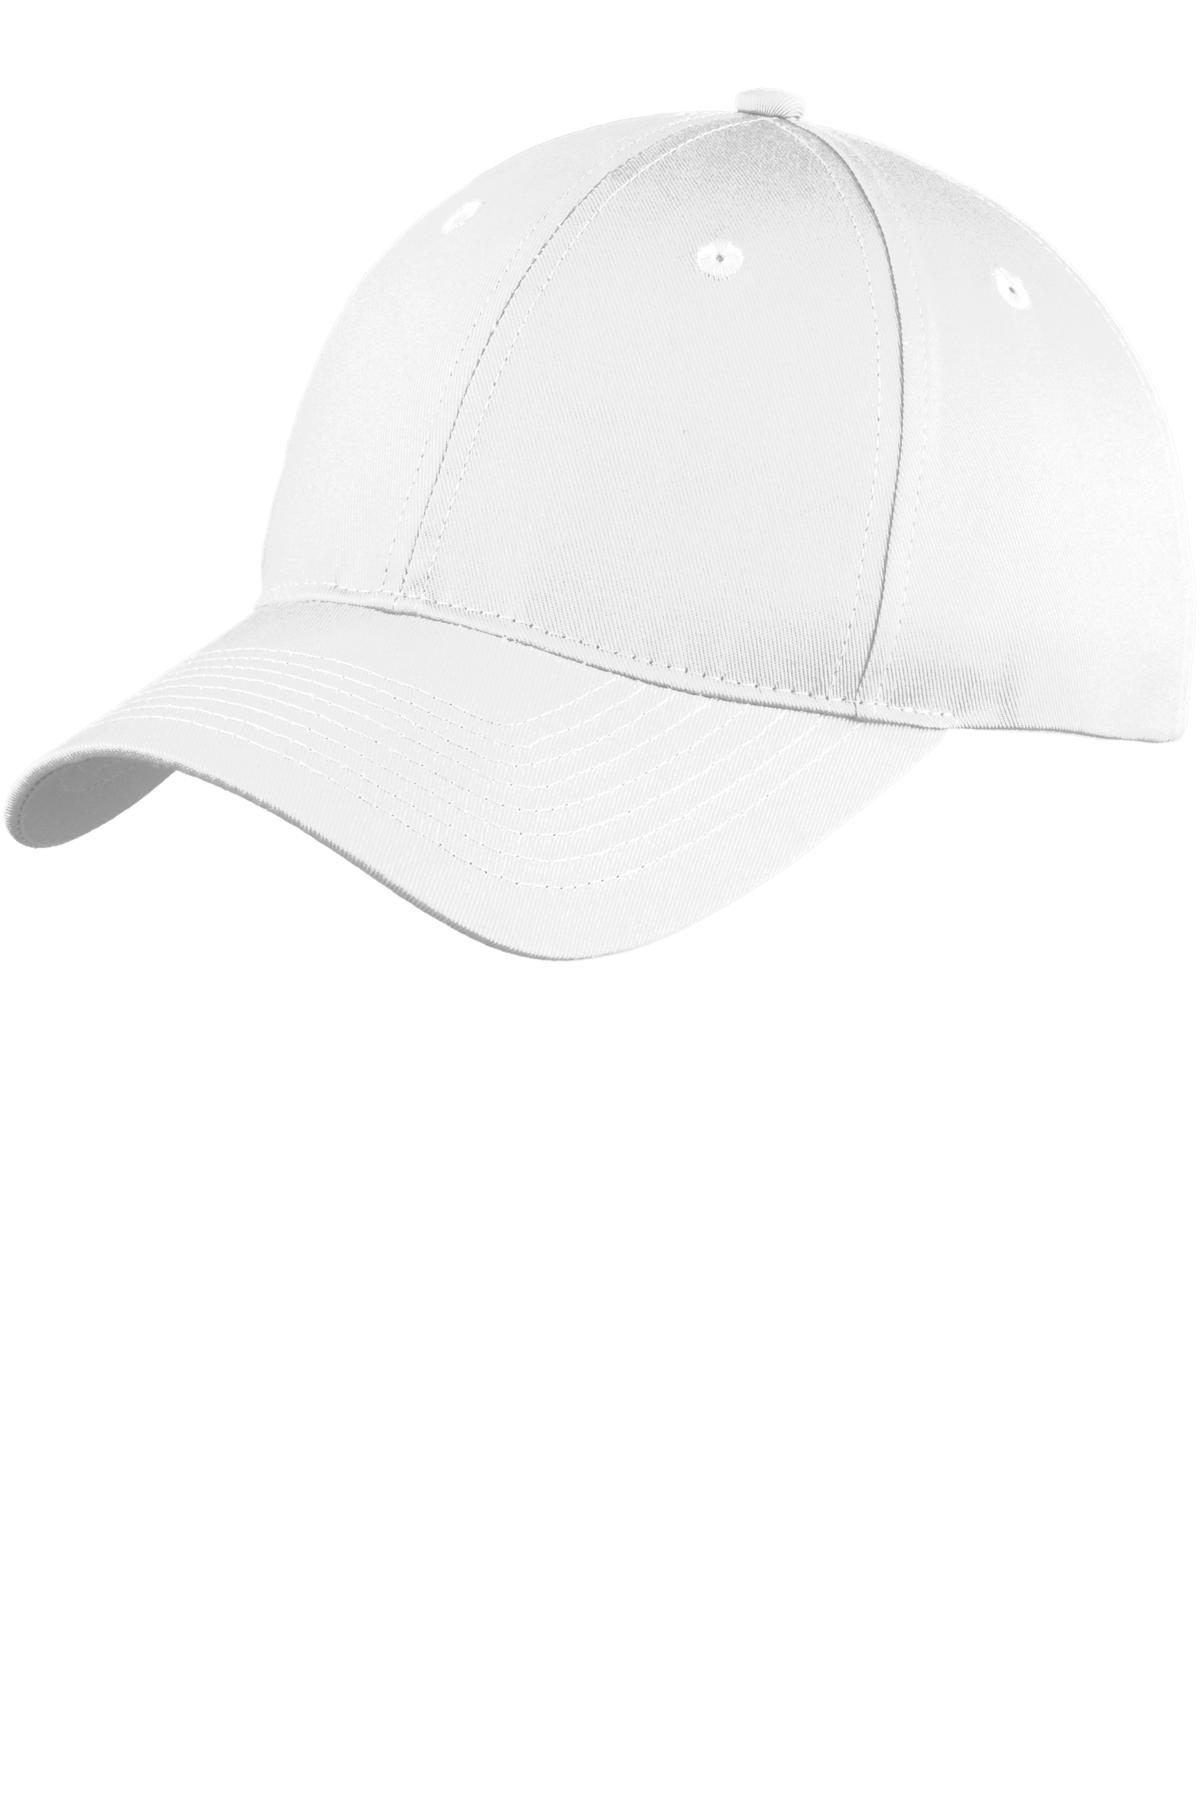 Port & Company ®  Six-Panel Unstructured Twill Cap. C914 - White